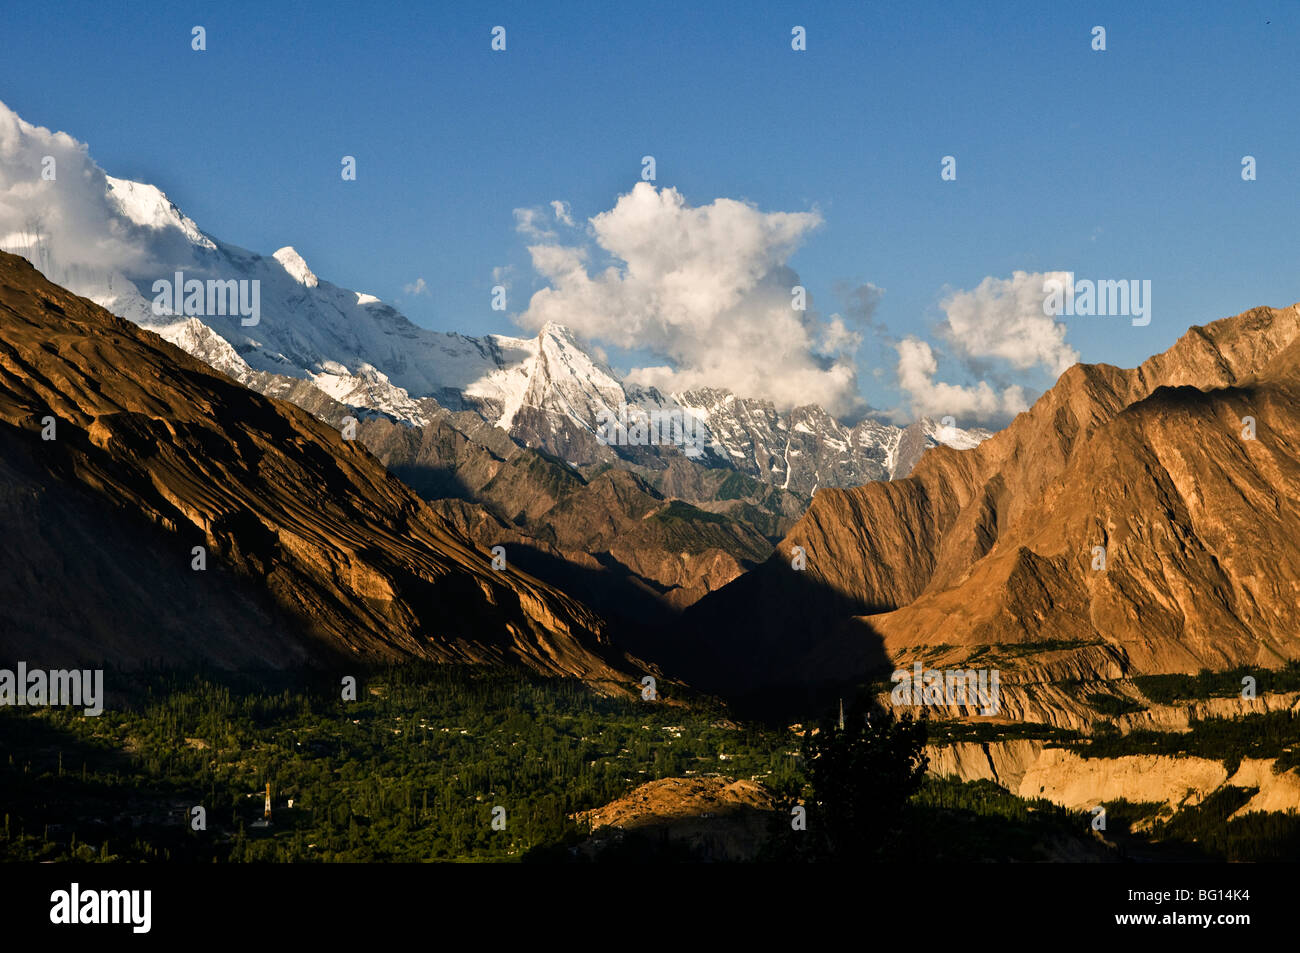 The beautiful Hunza valley. - Stock Image